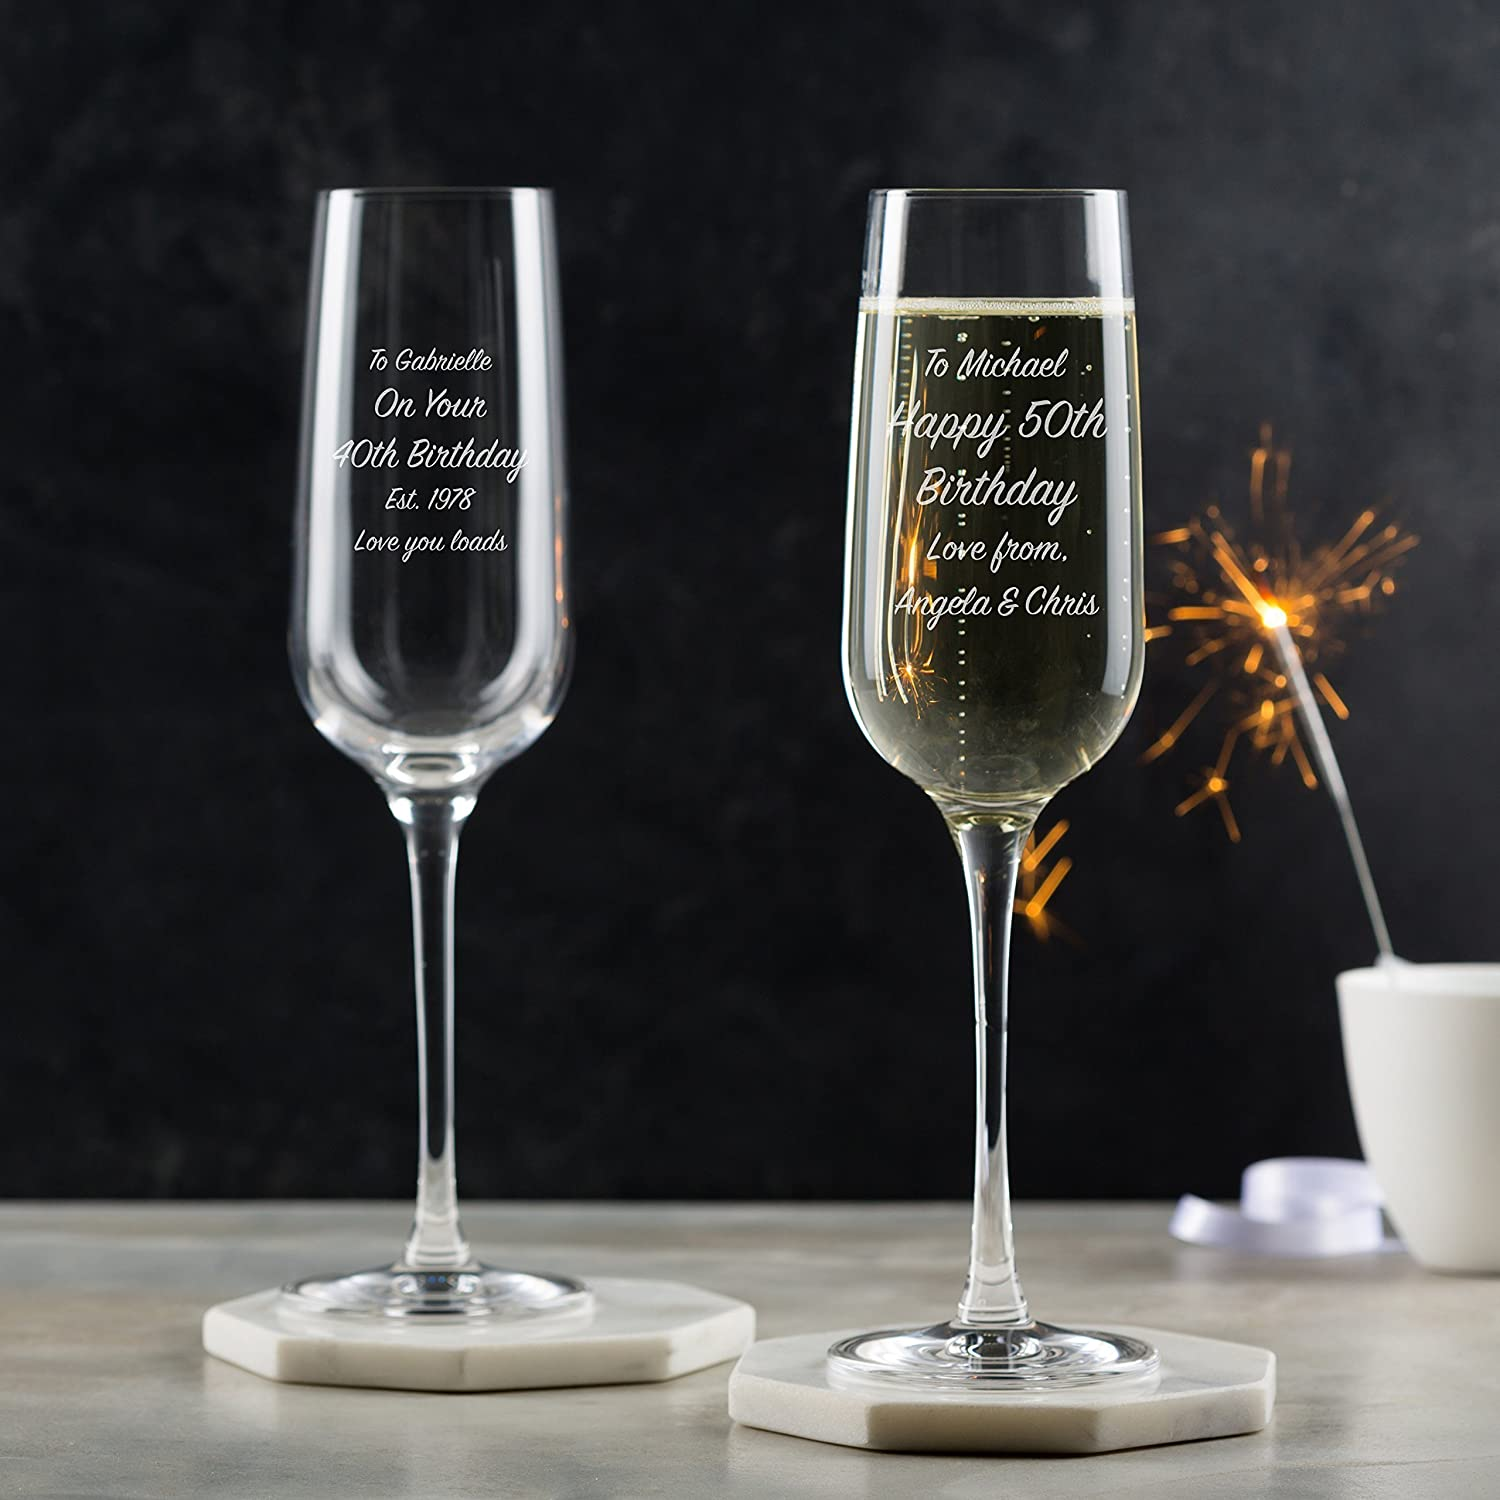 Personalised Champagne Flute/Personalised Prosecco Glass / 50th Birthday Champagne Glass / 40th Birthday Champagne Flute/Personalised Prosecco Gifts For Her